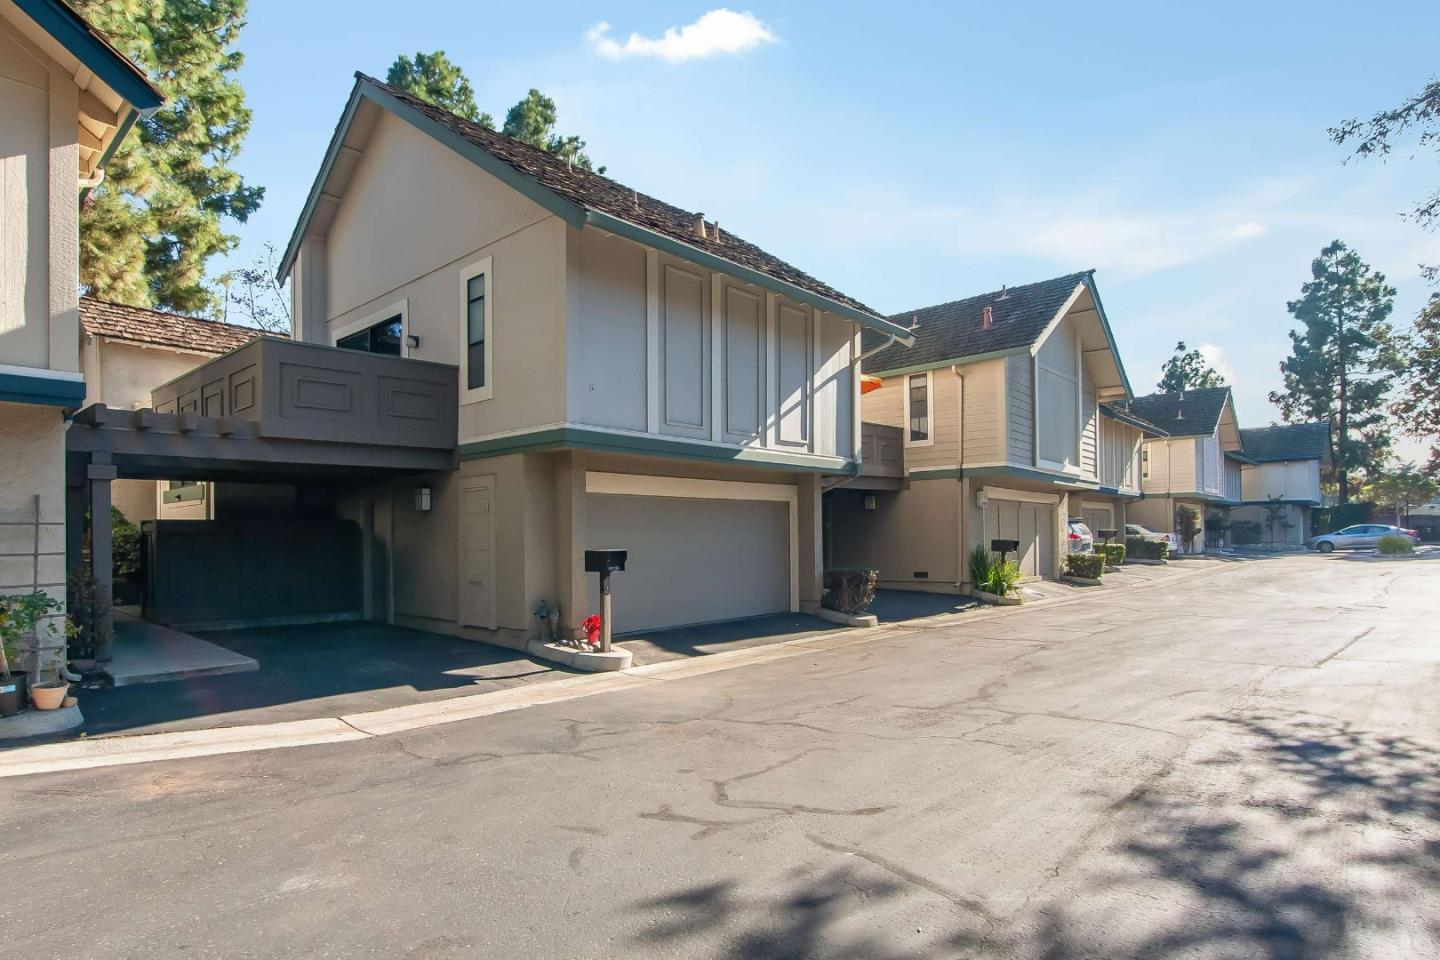 No shared walls in this desirable townhome. Vaulted ceiling,Two large private patios and 2 balconies. Two large bedrooms and 2 lofts. Top Cupertino schools: Garden Gate Elem, Lawson Middle & Monta Vista High.Two car garage with finished interior+ 1-car carport. Close to transportation & shopping.2 bed/ 2 bath detached property w/ attached 2 car garage, central AC,hardwood floor..close to Memorial Park, Cupertino Recreation and Community Center, De Anza College, and shopping,